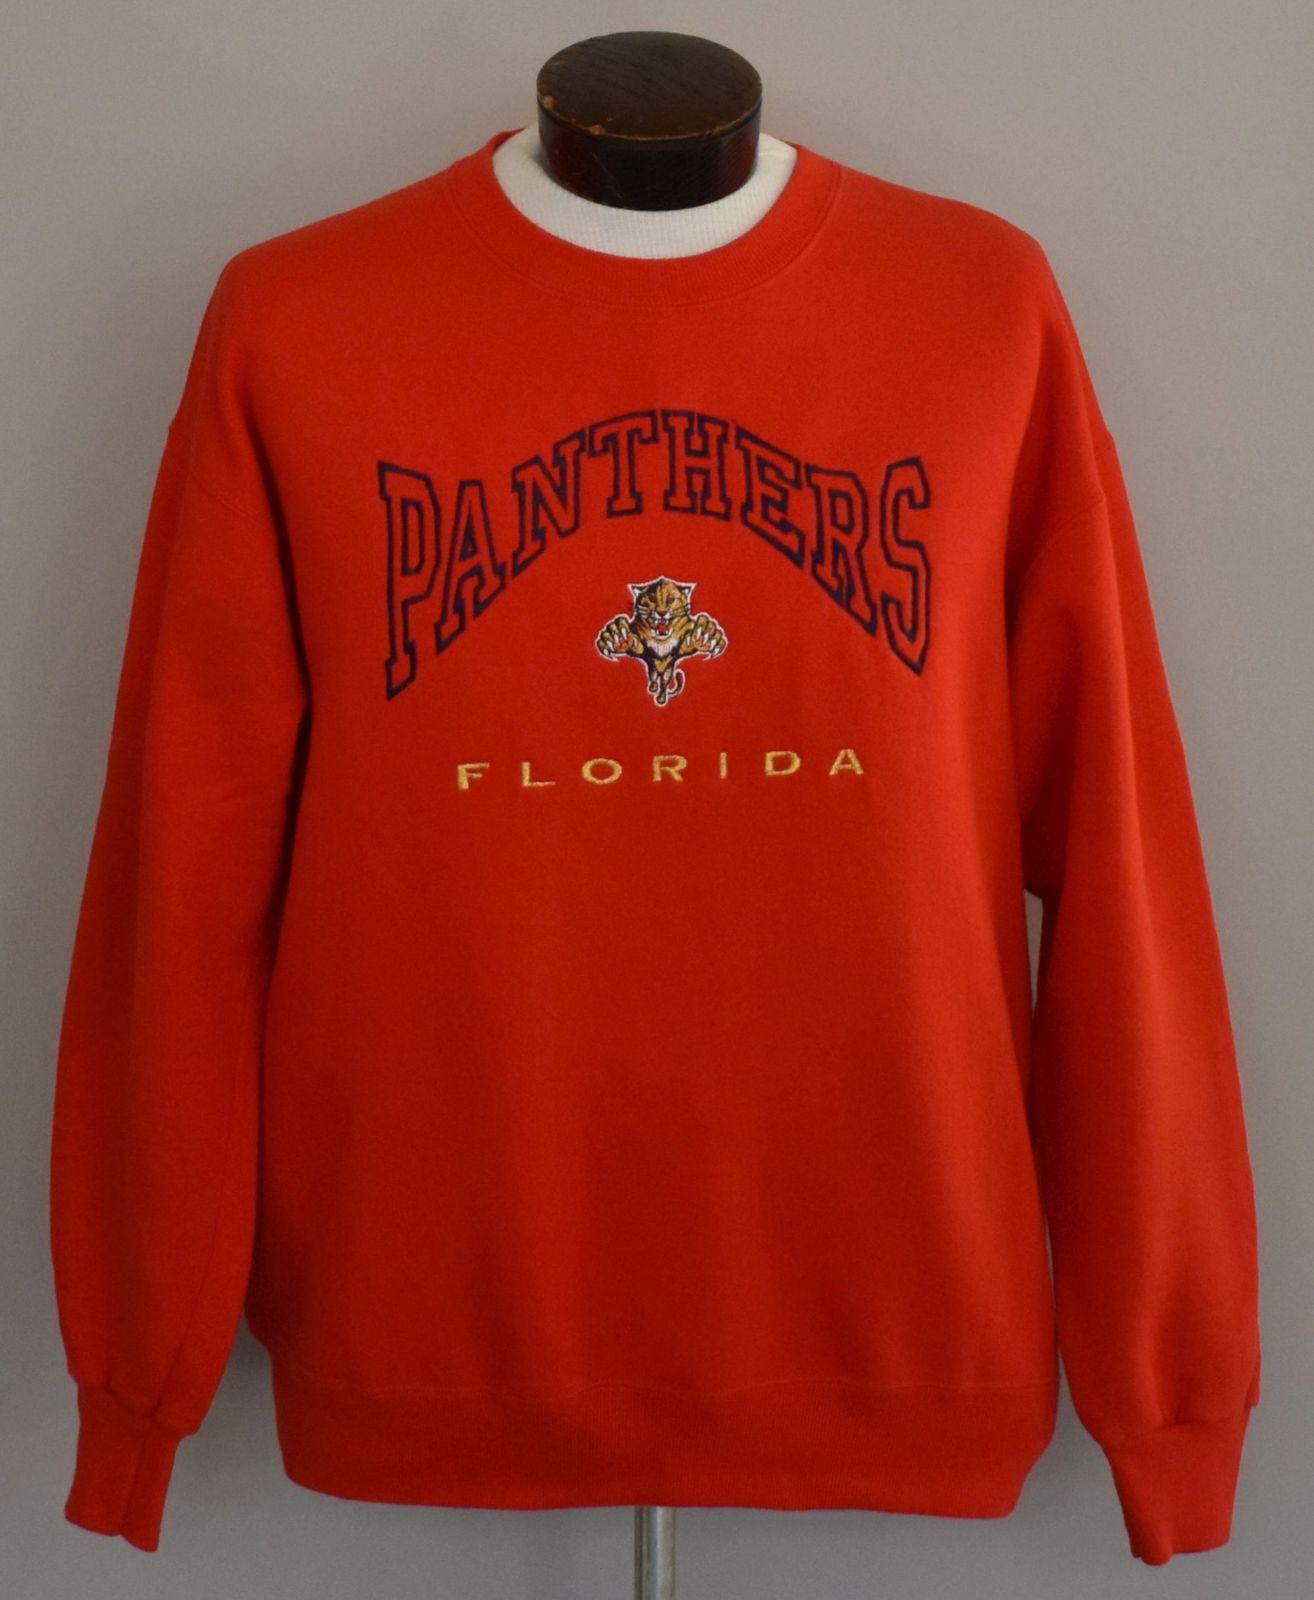 90s Florida Panthers Embroidered Crewneck Sweatshirt Size Hipster Large to XL